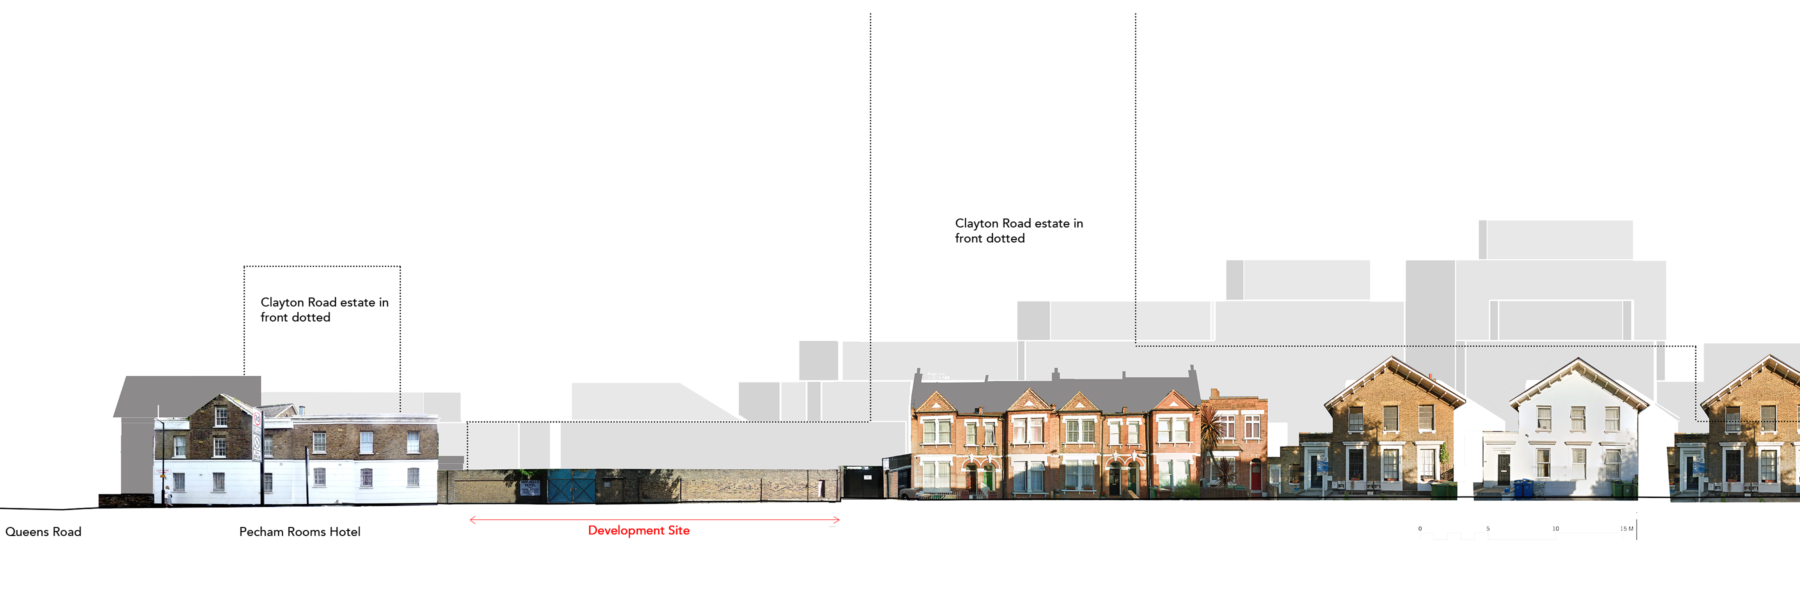 Sarah-Wigglesworth-Architects Queens-Road Existing-Street-Elevation 3600x1200